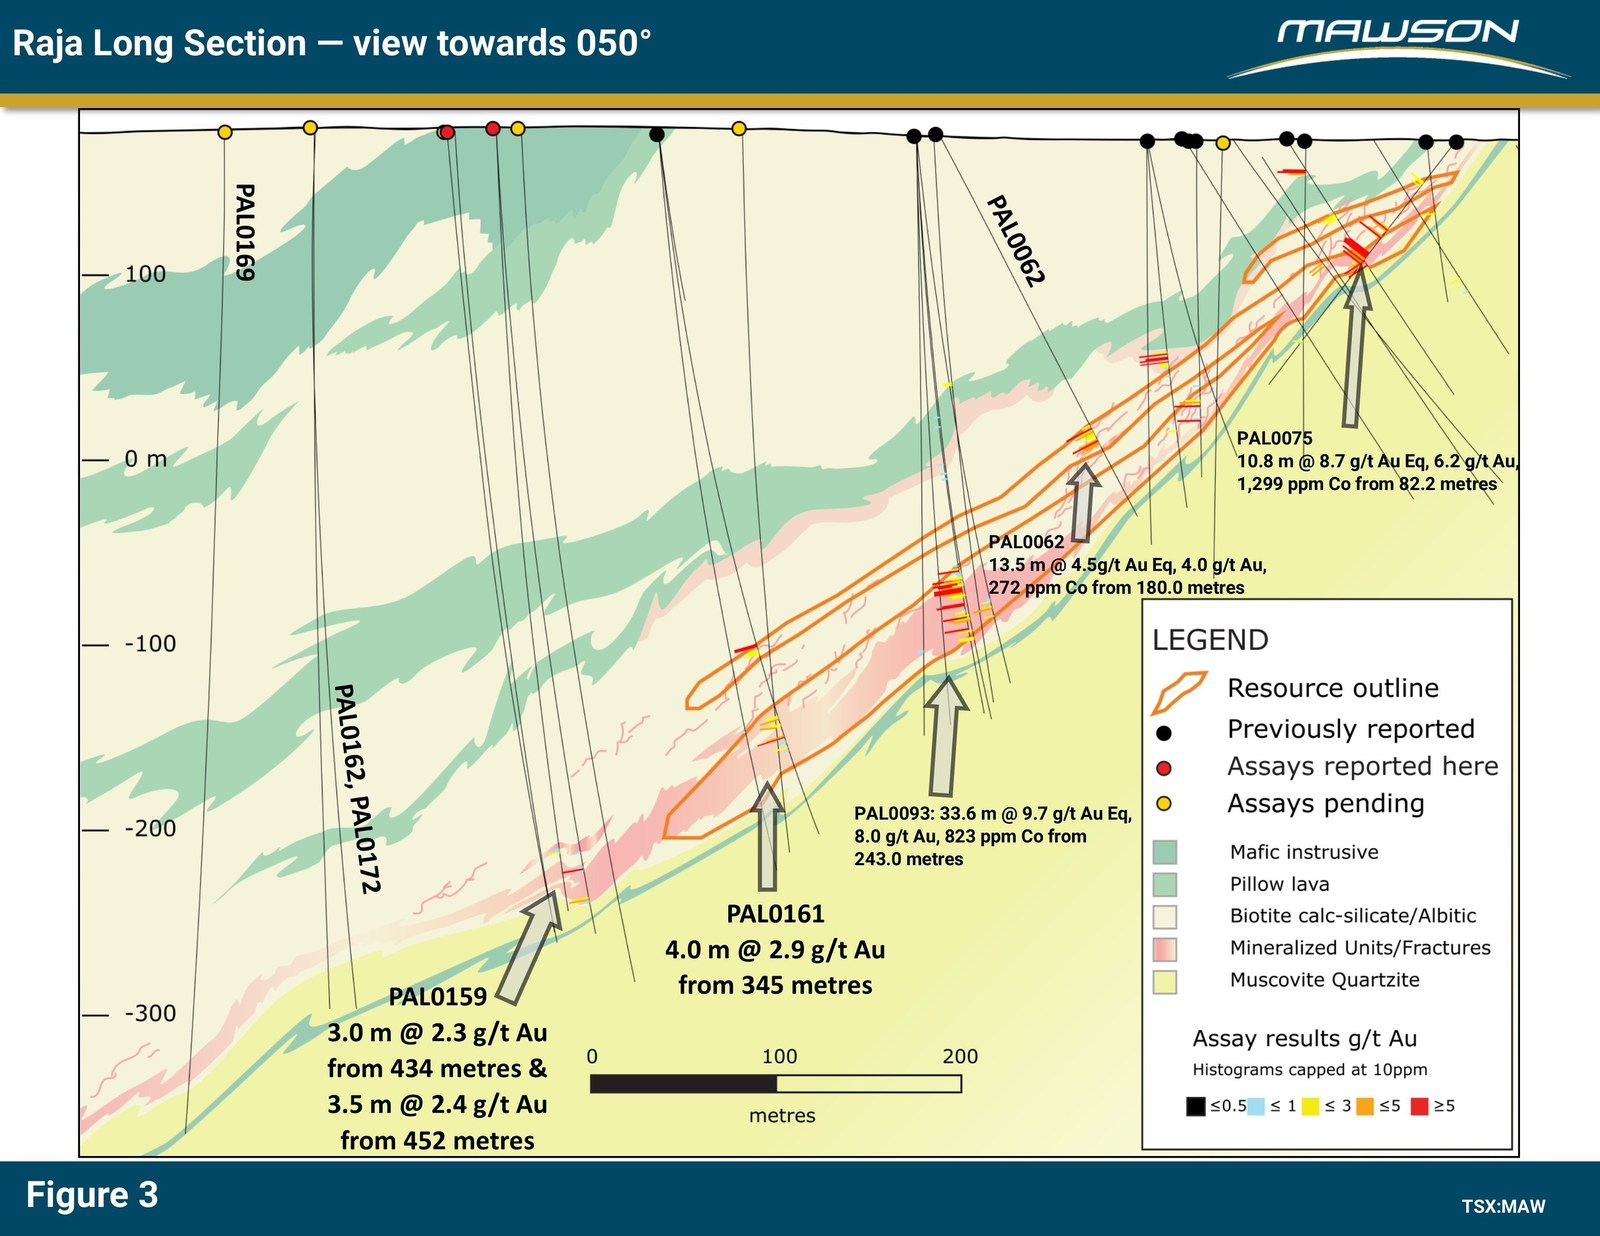 Figure 3: Long section at Raja prospect showing continuation of mineralized sequence below existing resource. Outlines of existing resource are also indicated.